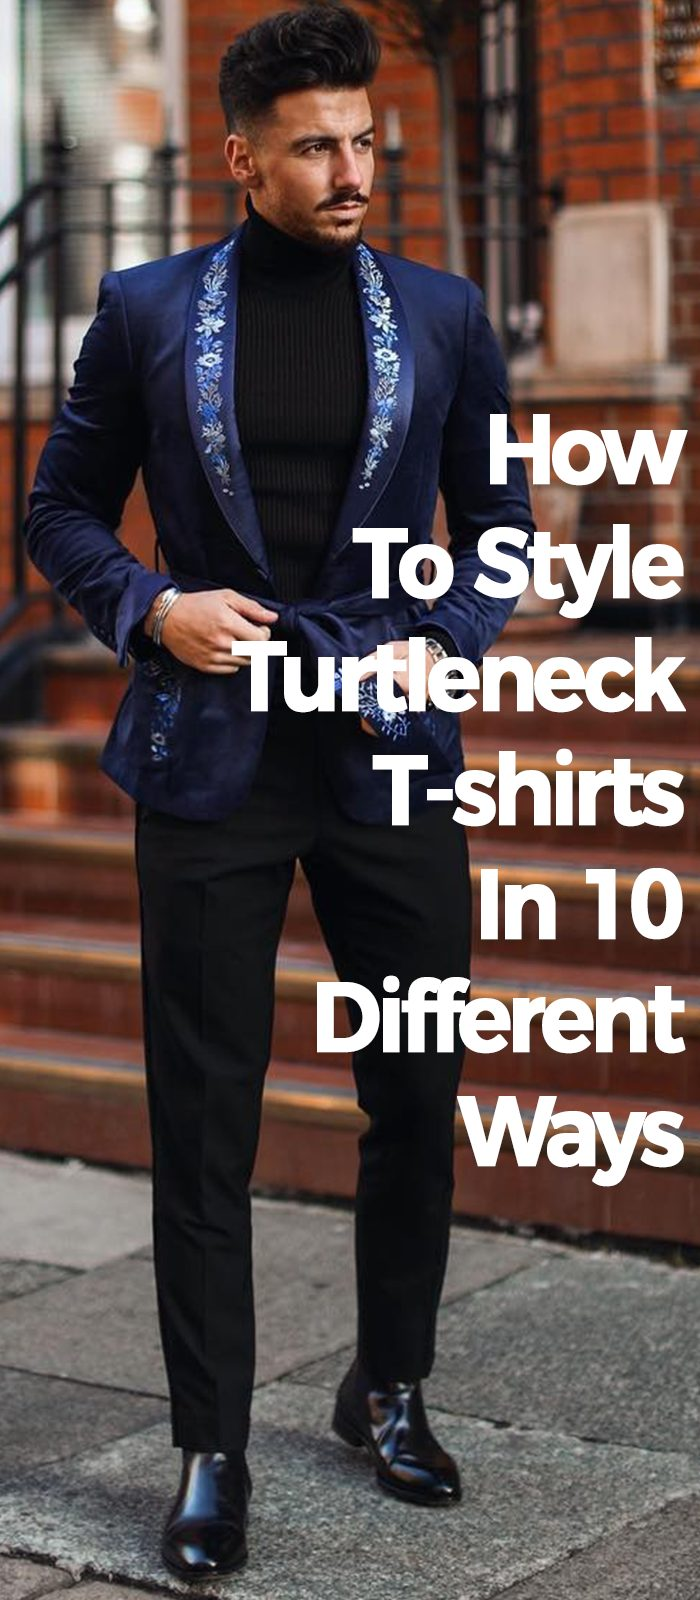 How To Style Turtleneck T-shirts In 10 Different Ways.